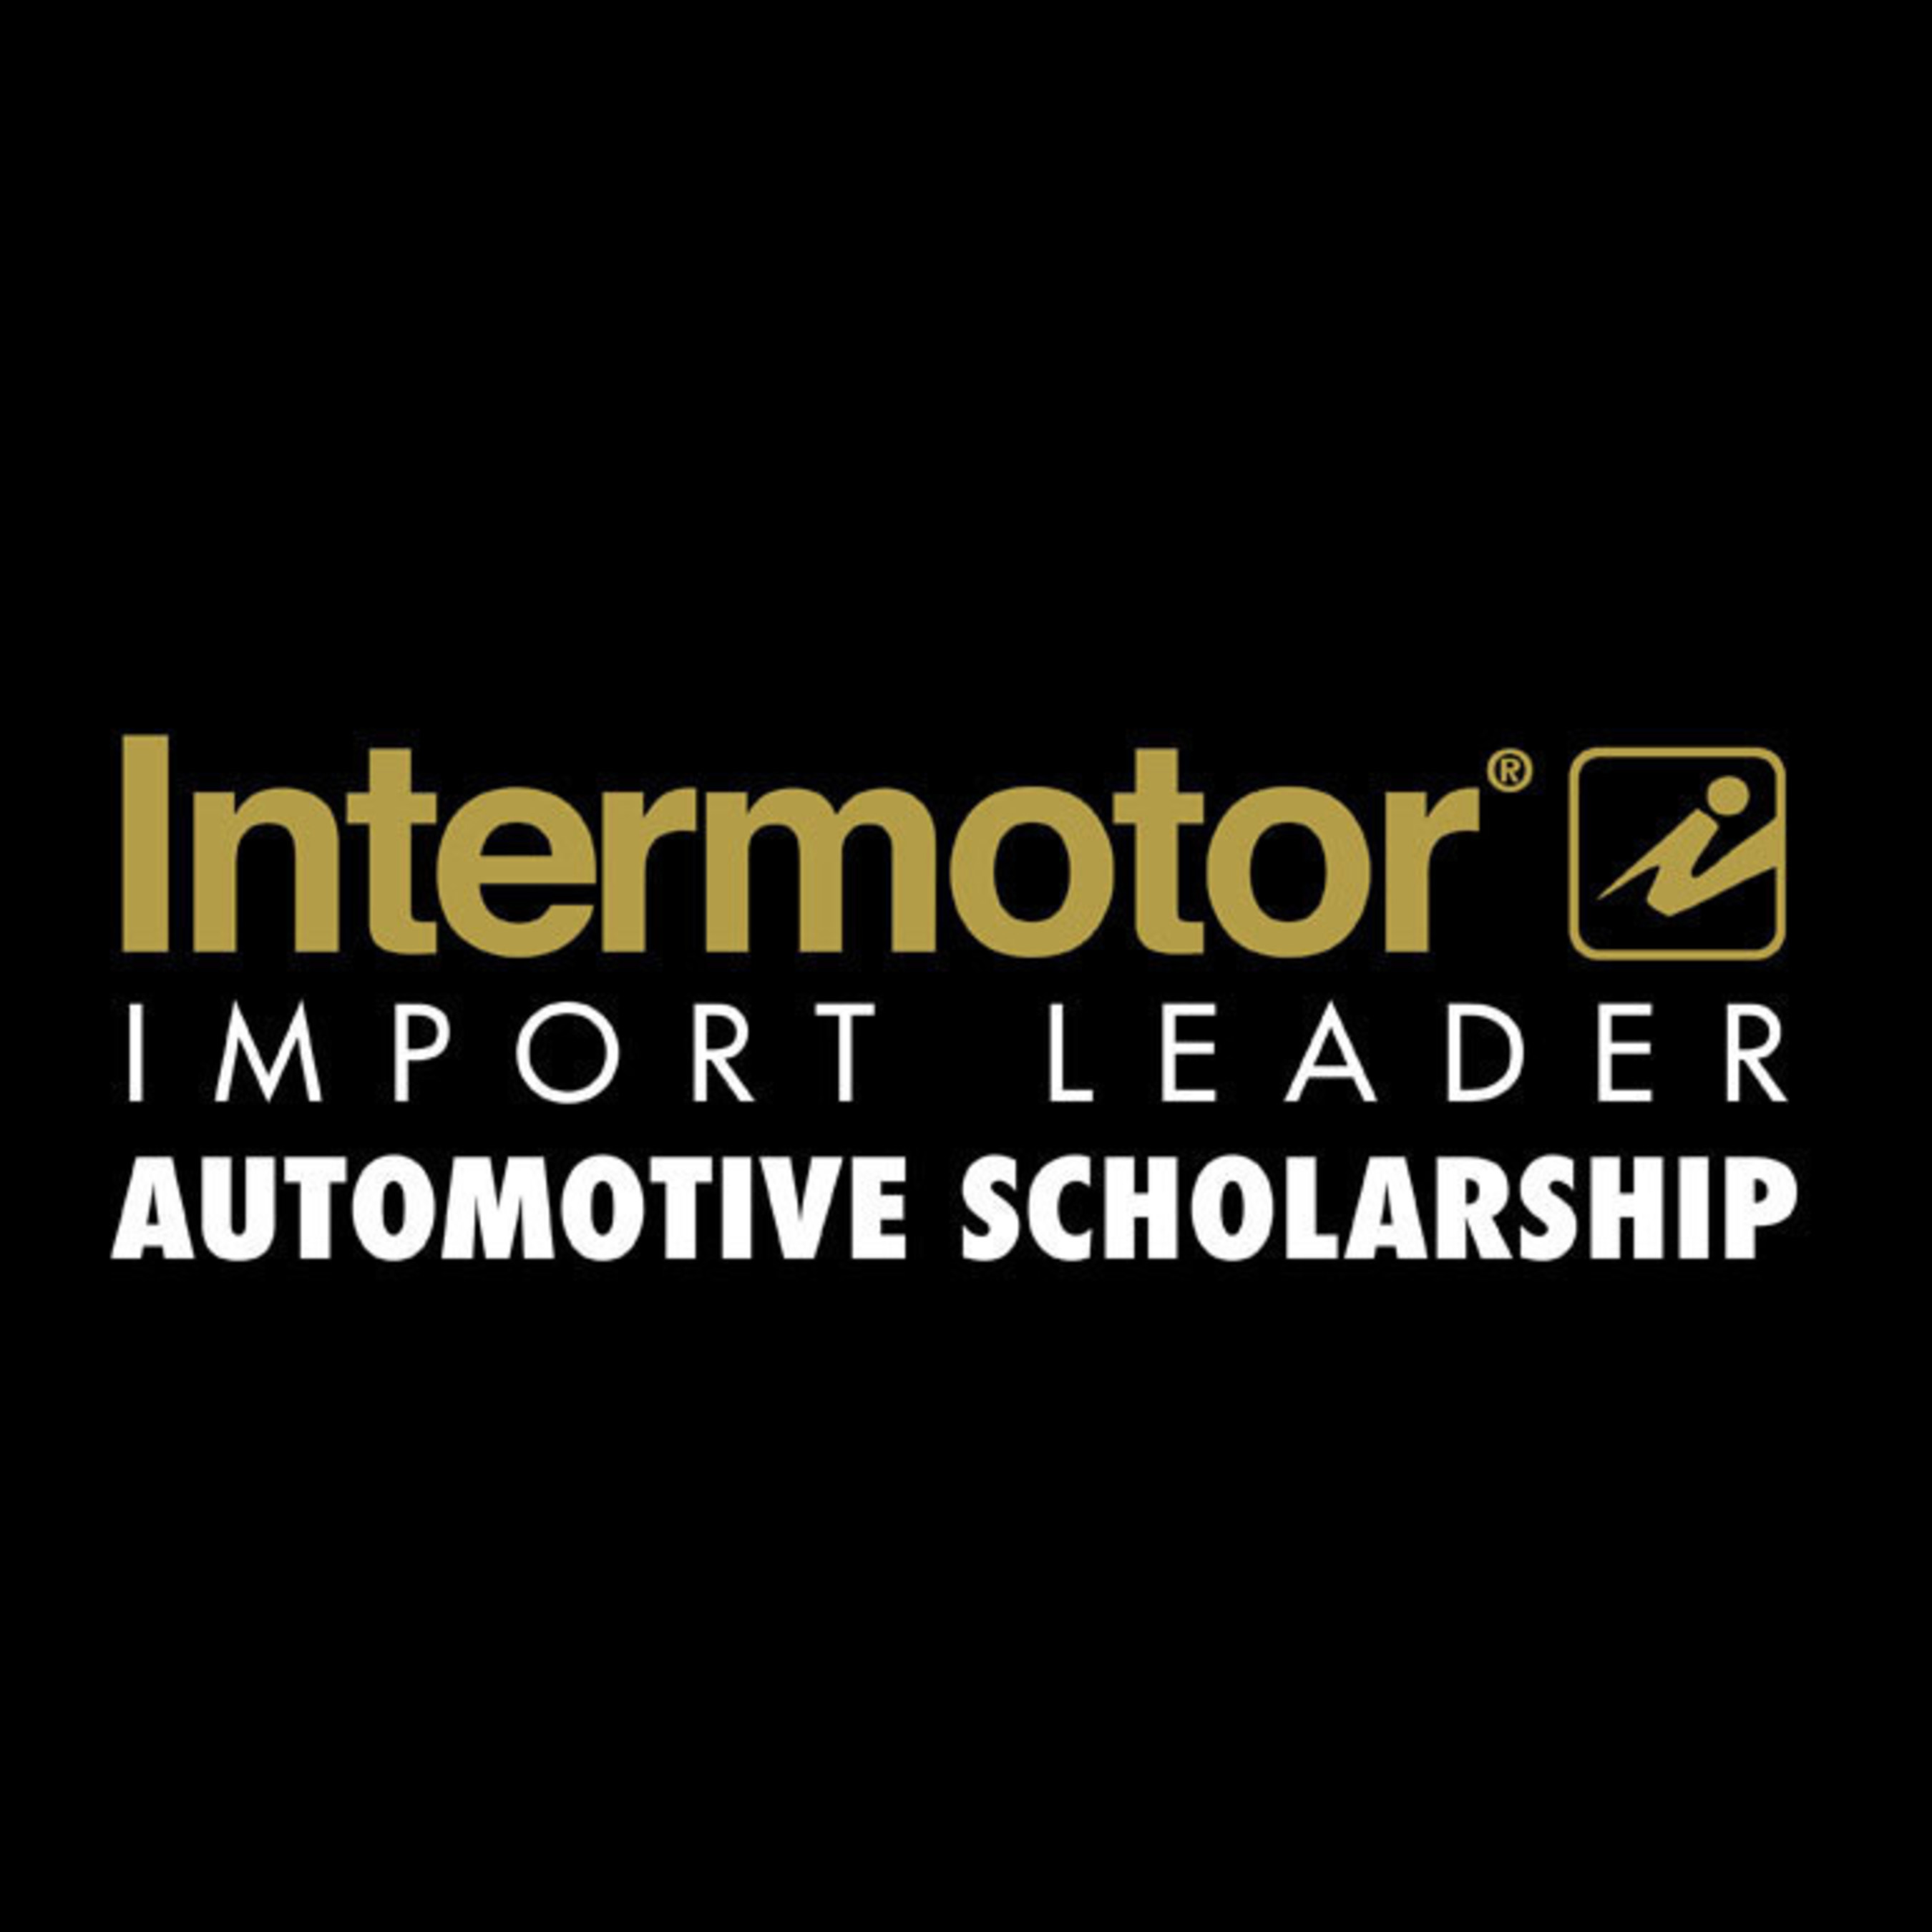 Standard Motor Products, Inc. Announces Two $5,000 Intermotor(R) Scholarship Winners